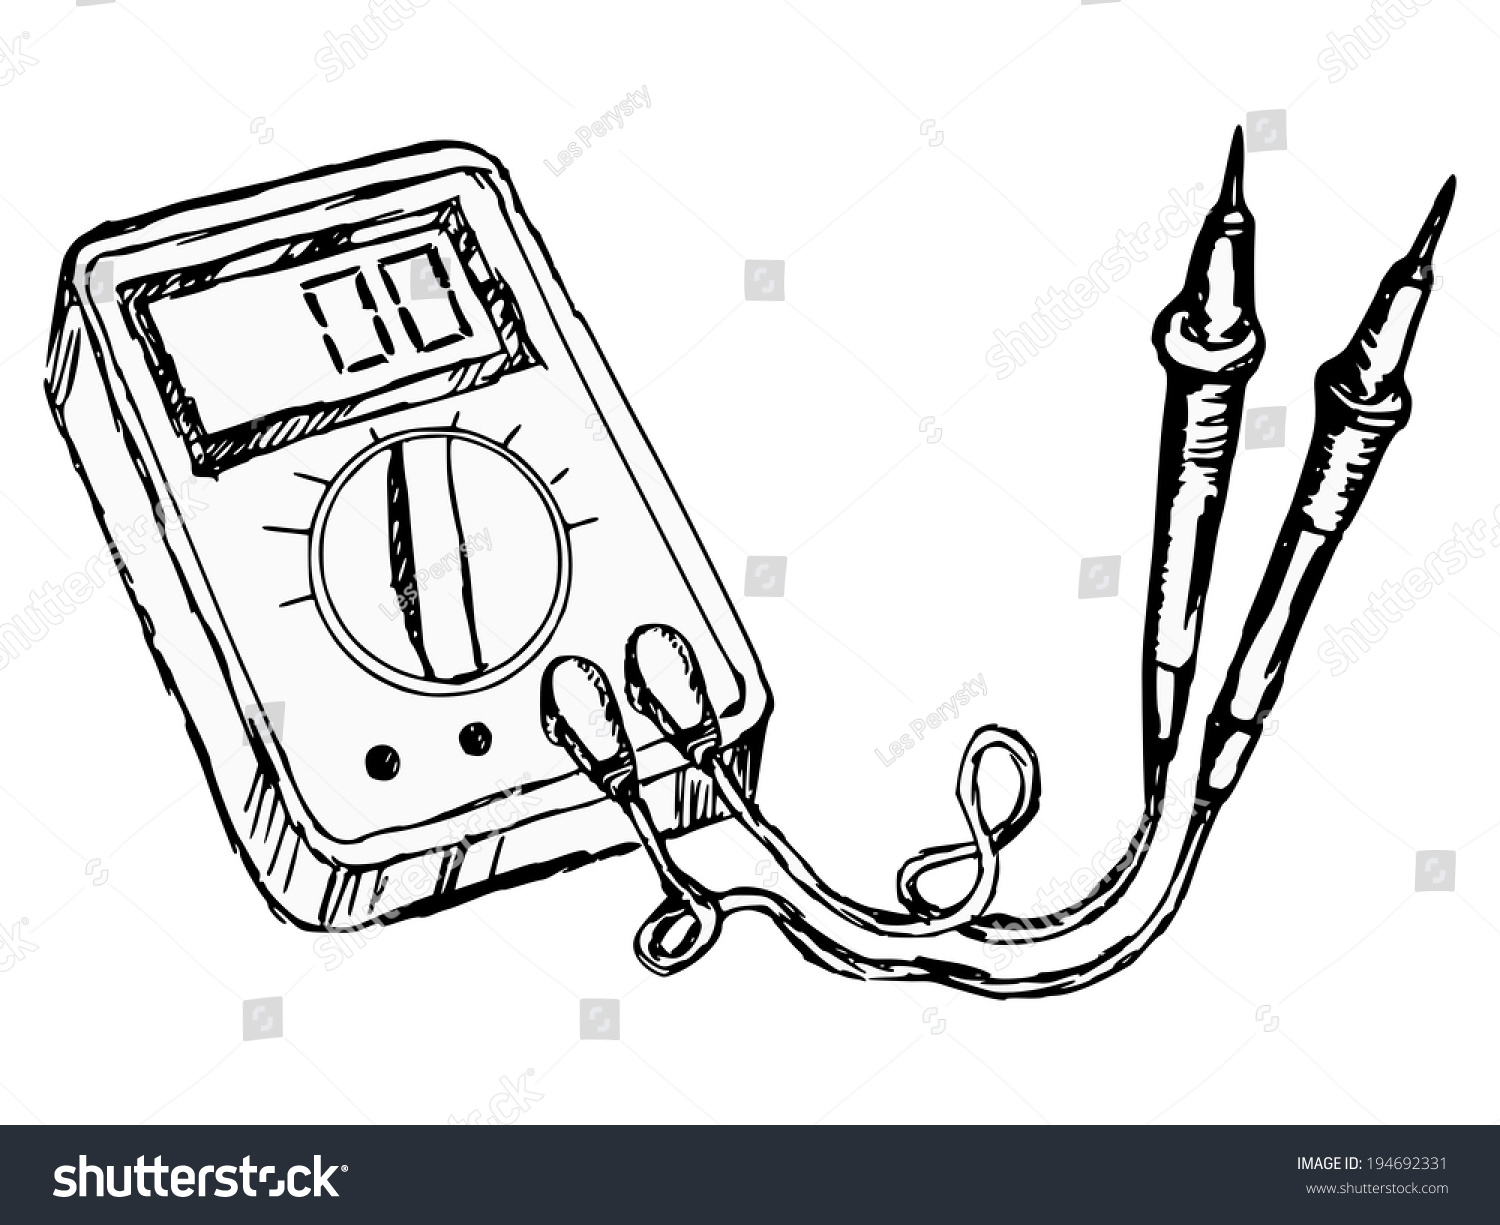 Notebook And Pen Sketch Stock Vector Art More Images Of: Hand Drawn Cartoon Sketch Illustration Multimeter Stock